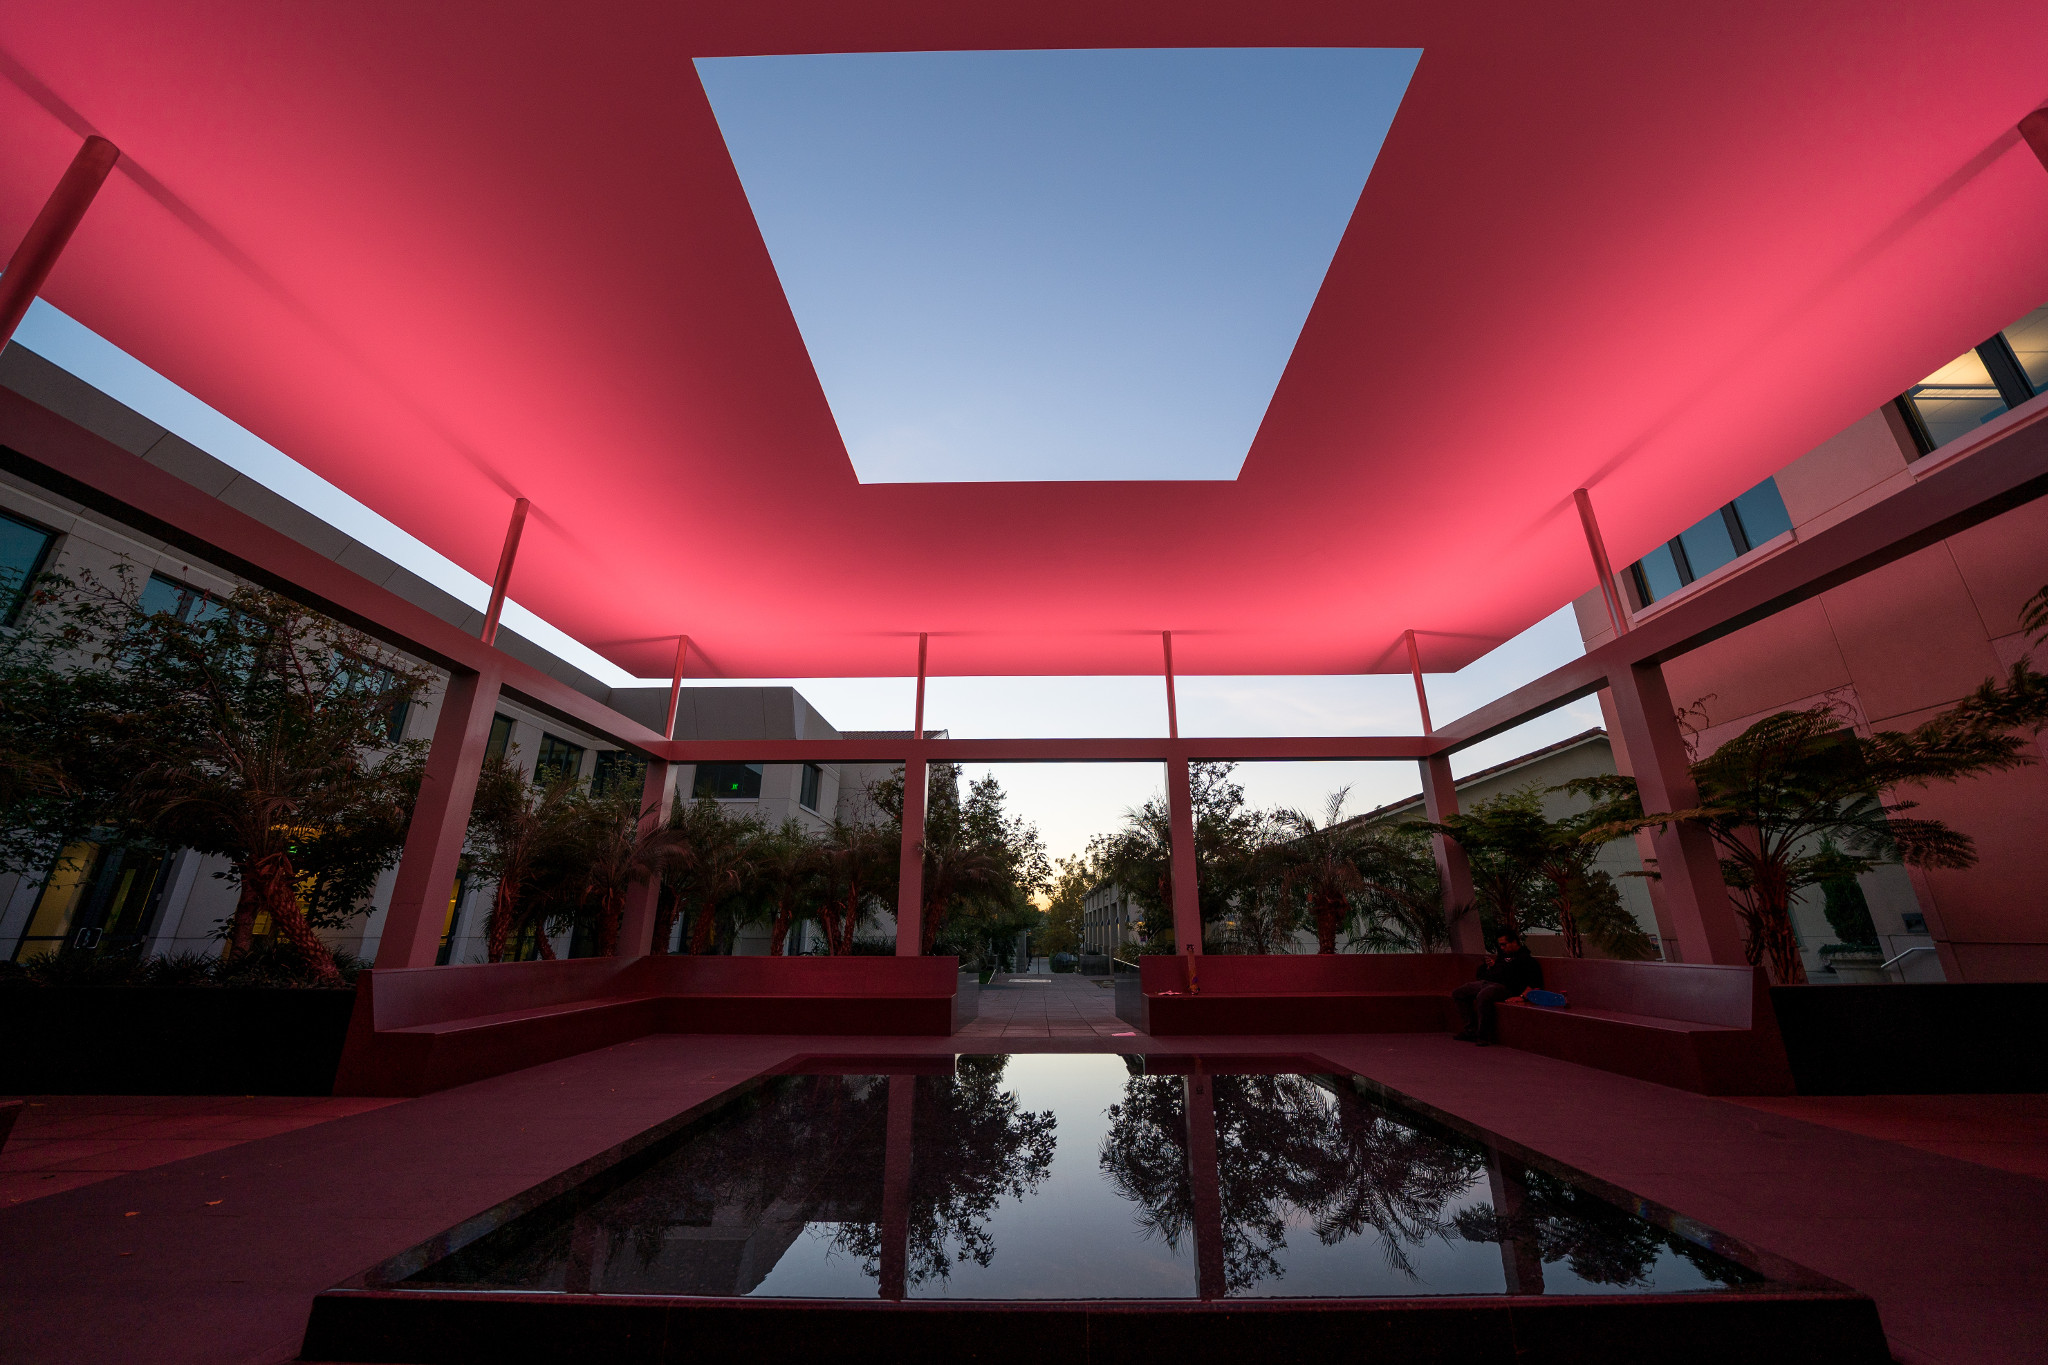 An art exhibition featuring a reflective pool and glowing red light.